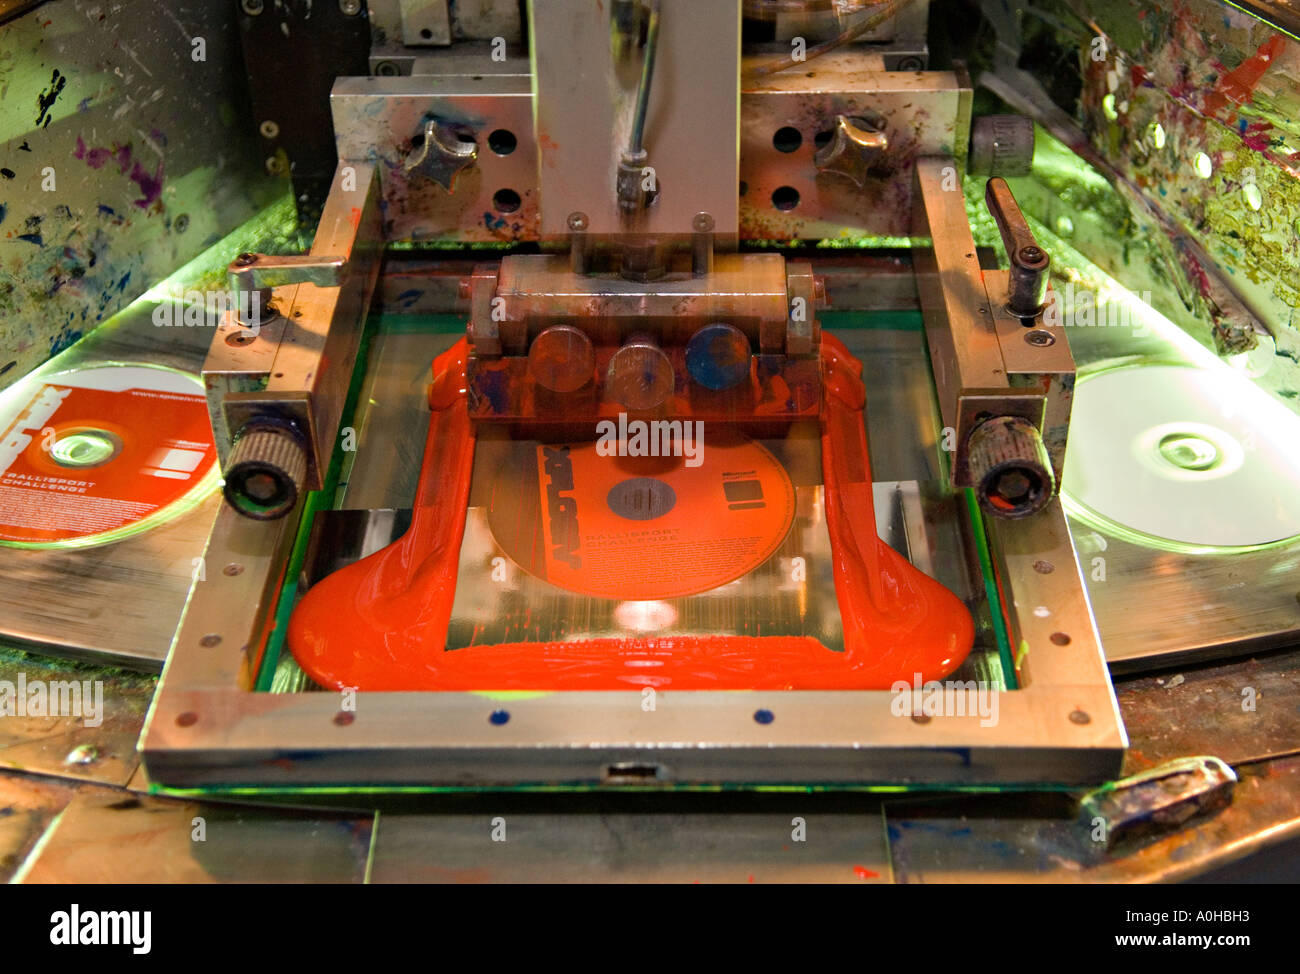 Silk screen label printing of CDs and DVDs - Stock Image